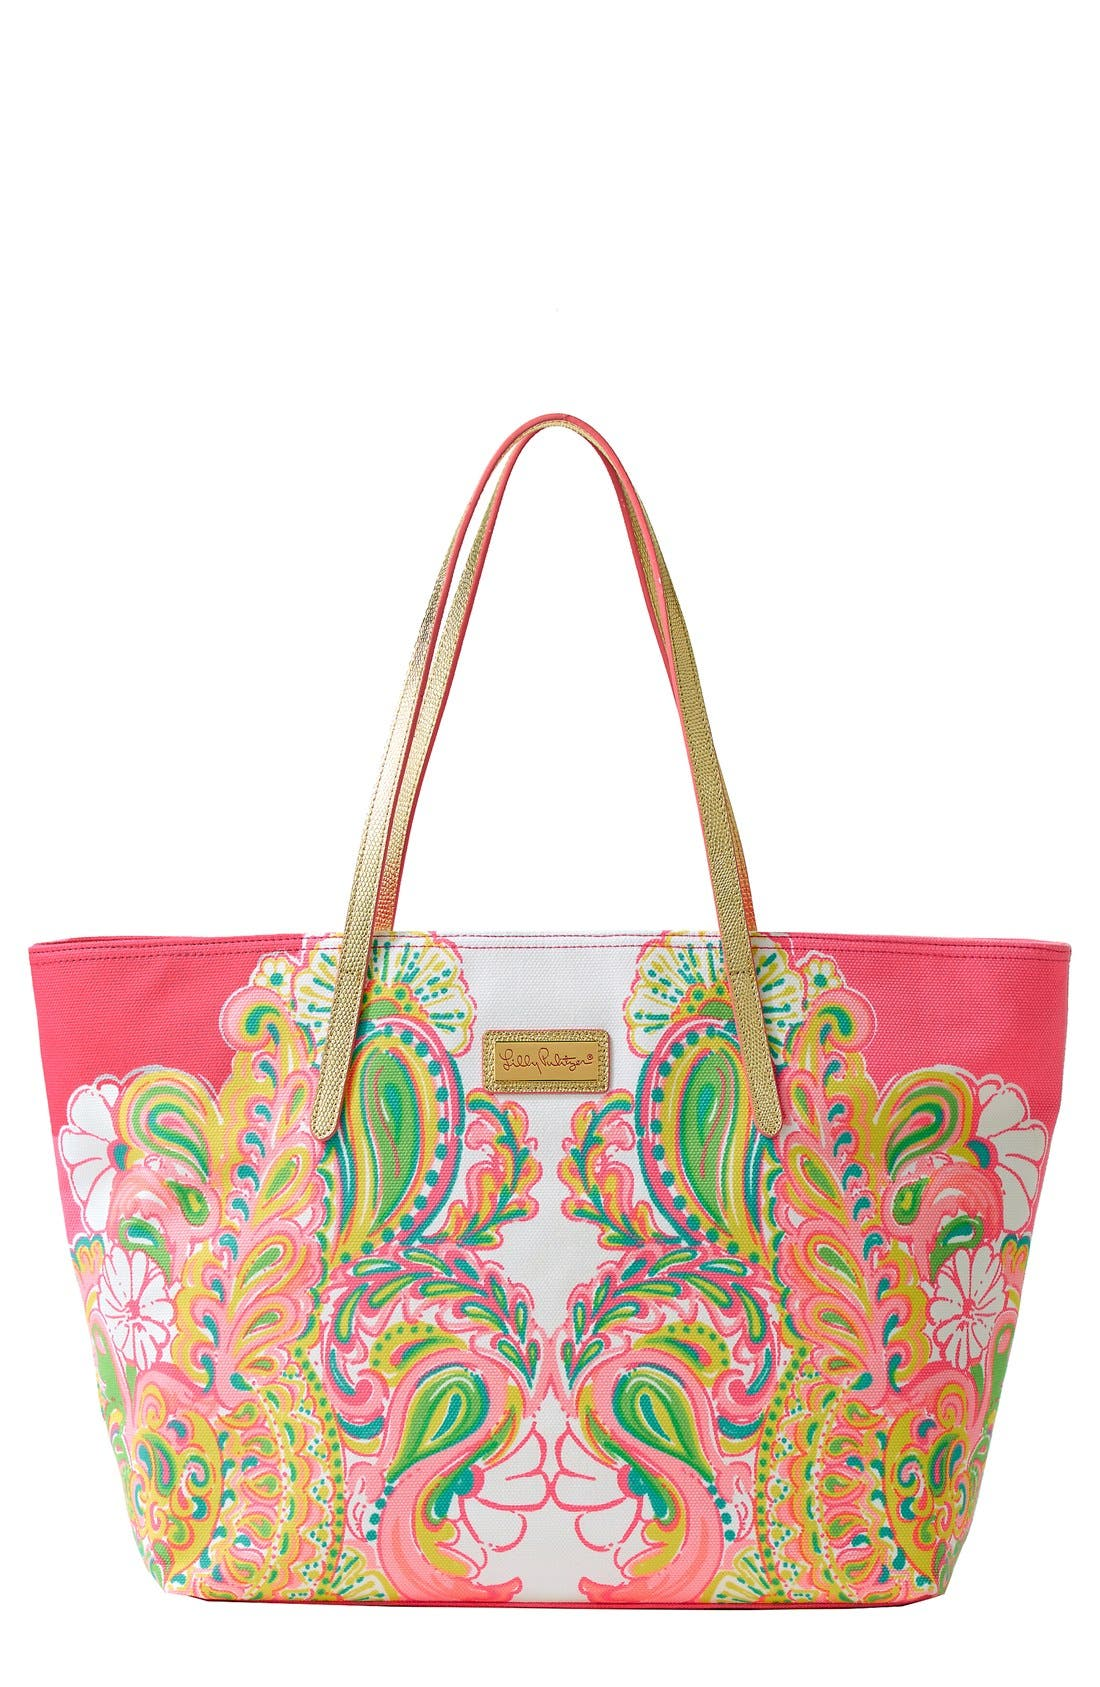 Alternate Image 1 Selected - Lilly Pulitzer® 'Resort' Tote